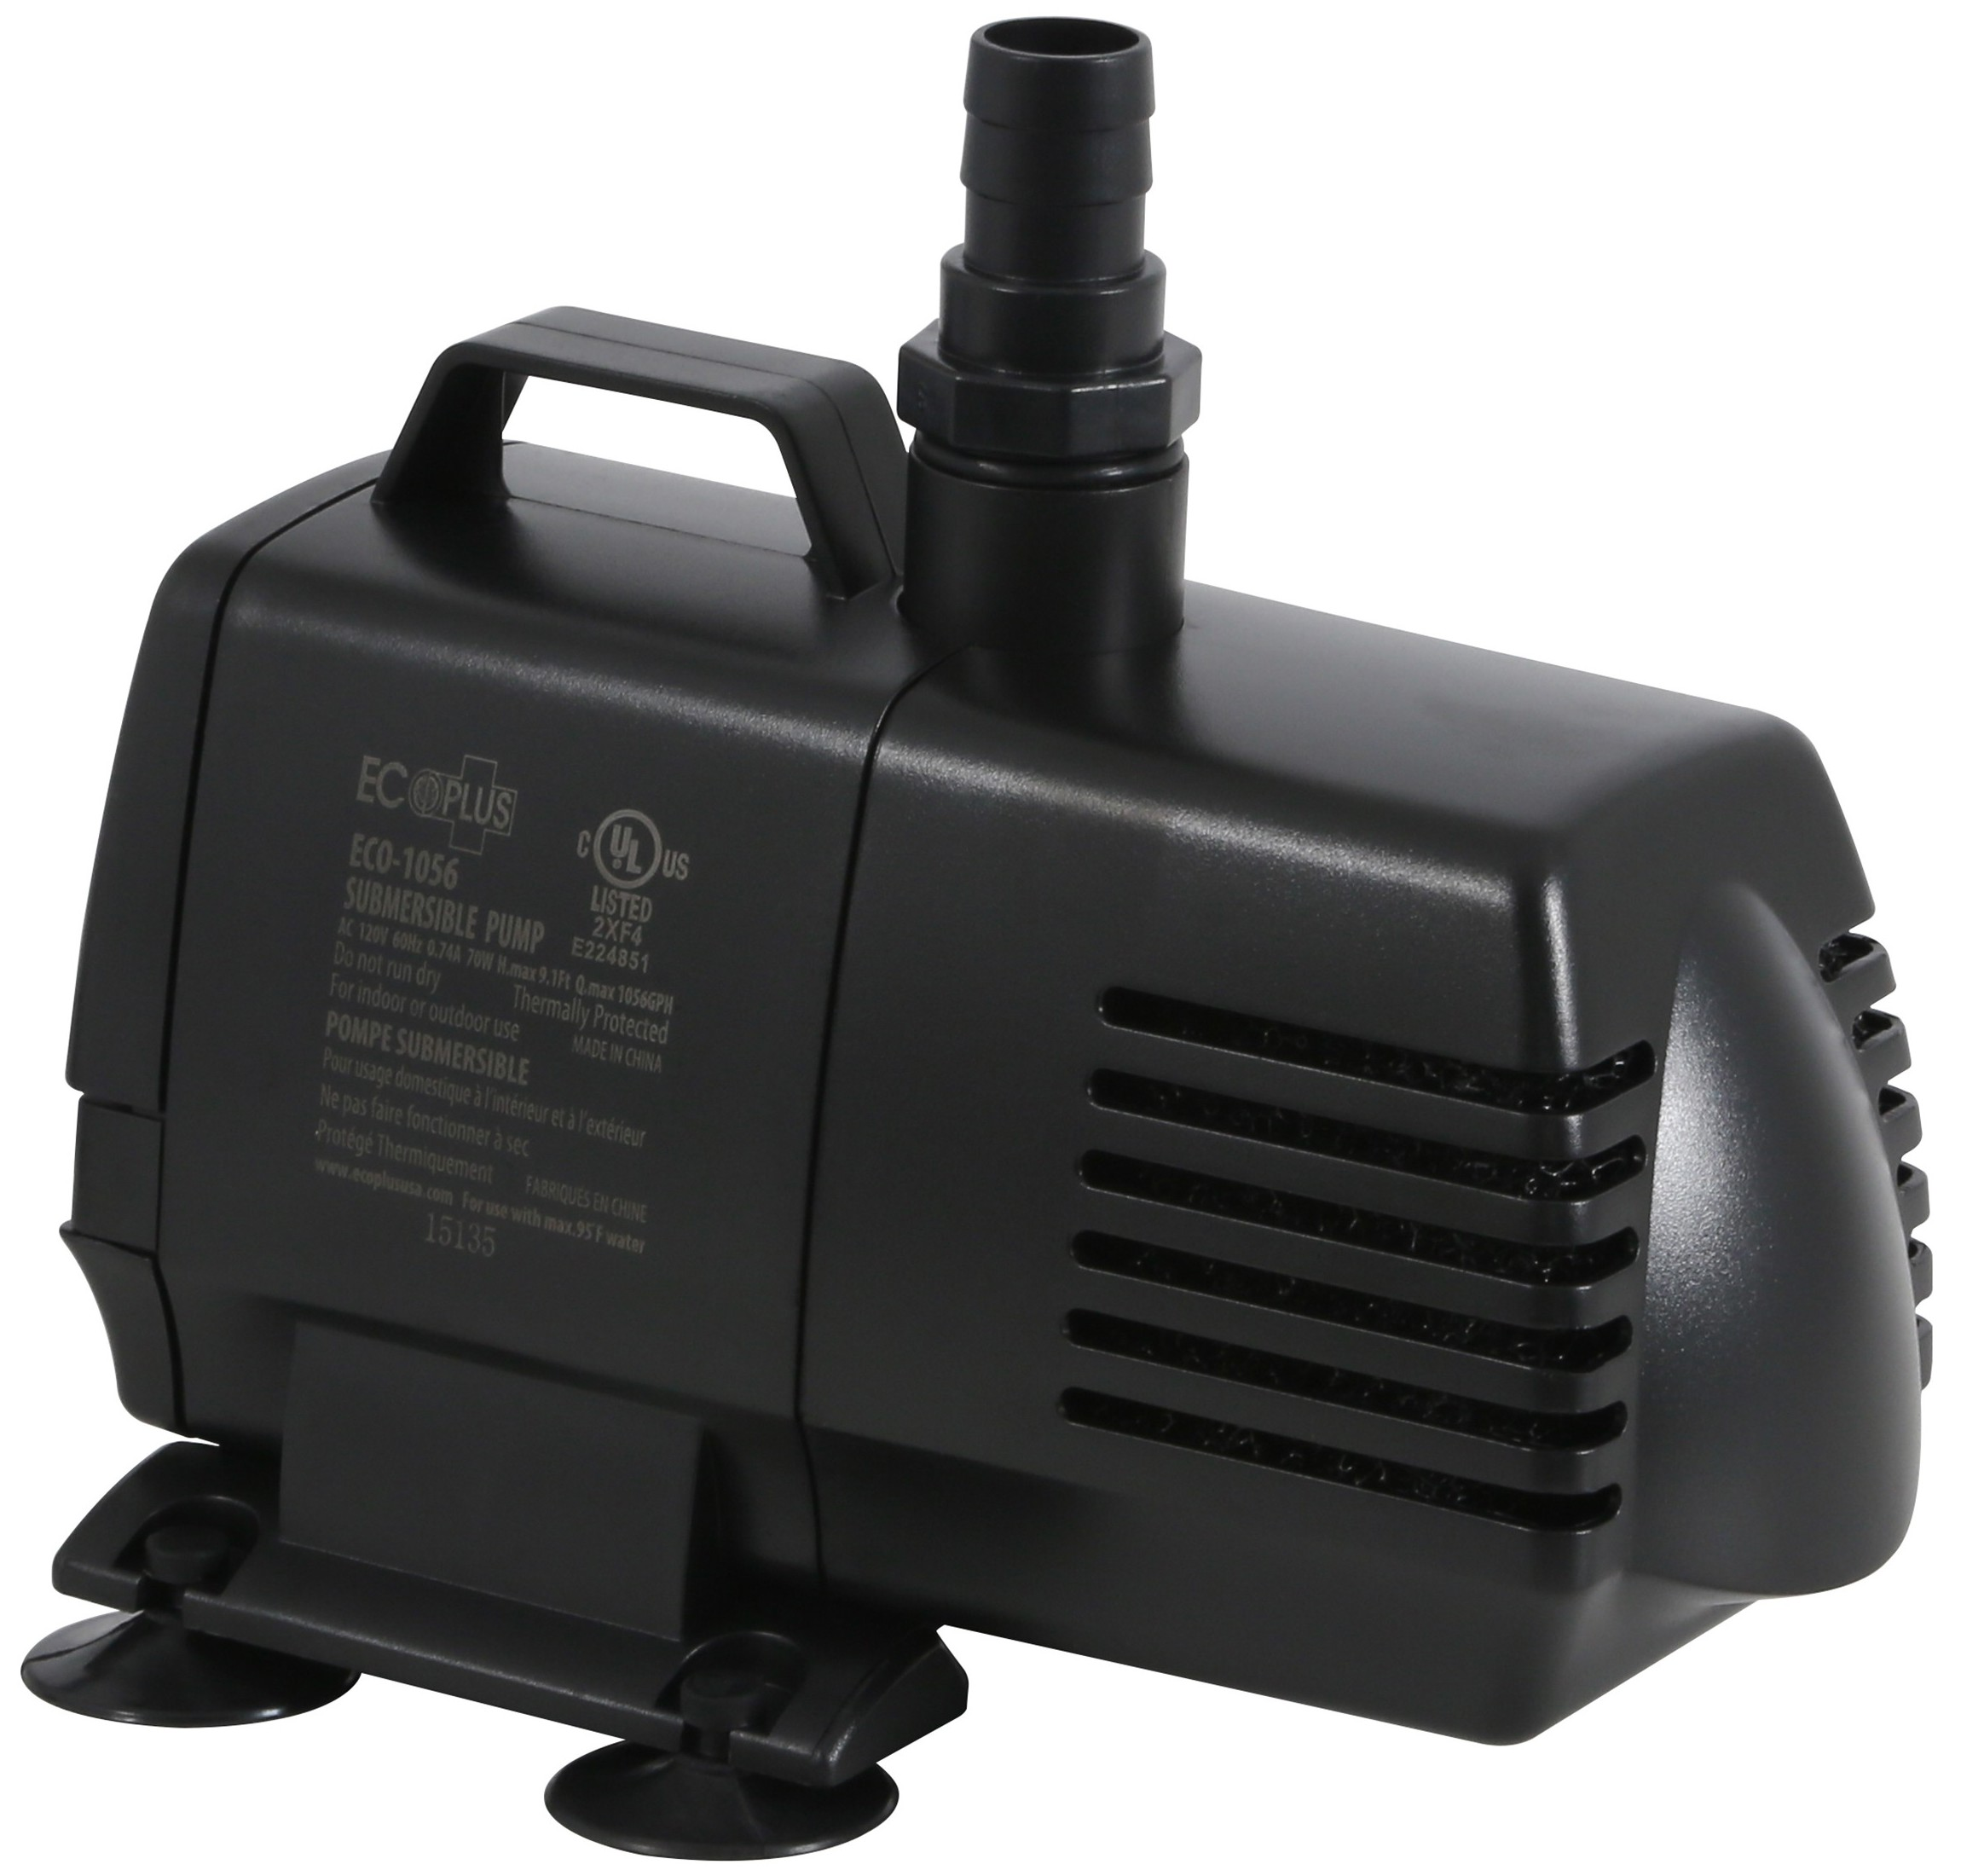 Ecoplus 1056 submersible pump 1083 gph for 1083 3